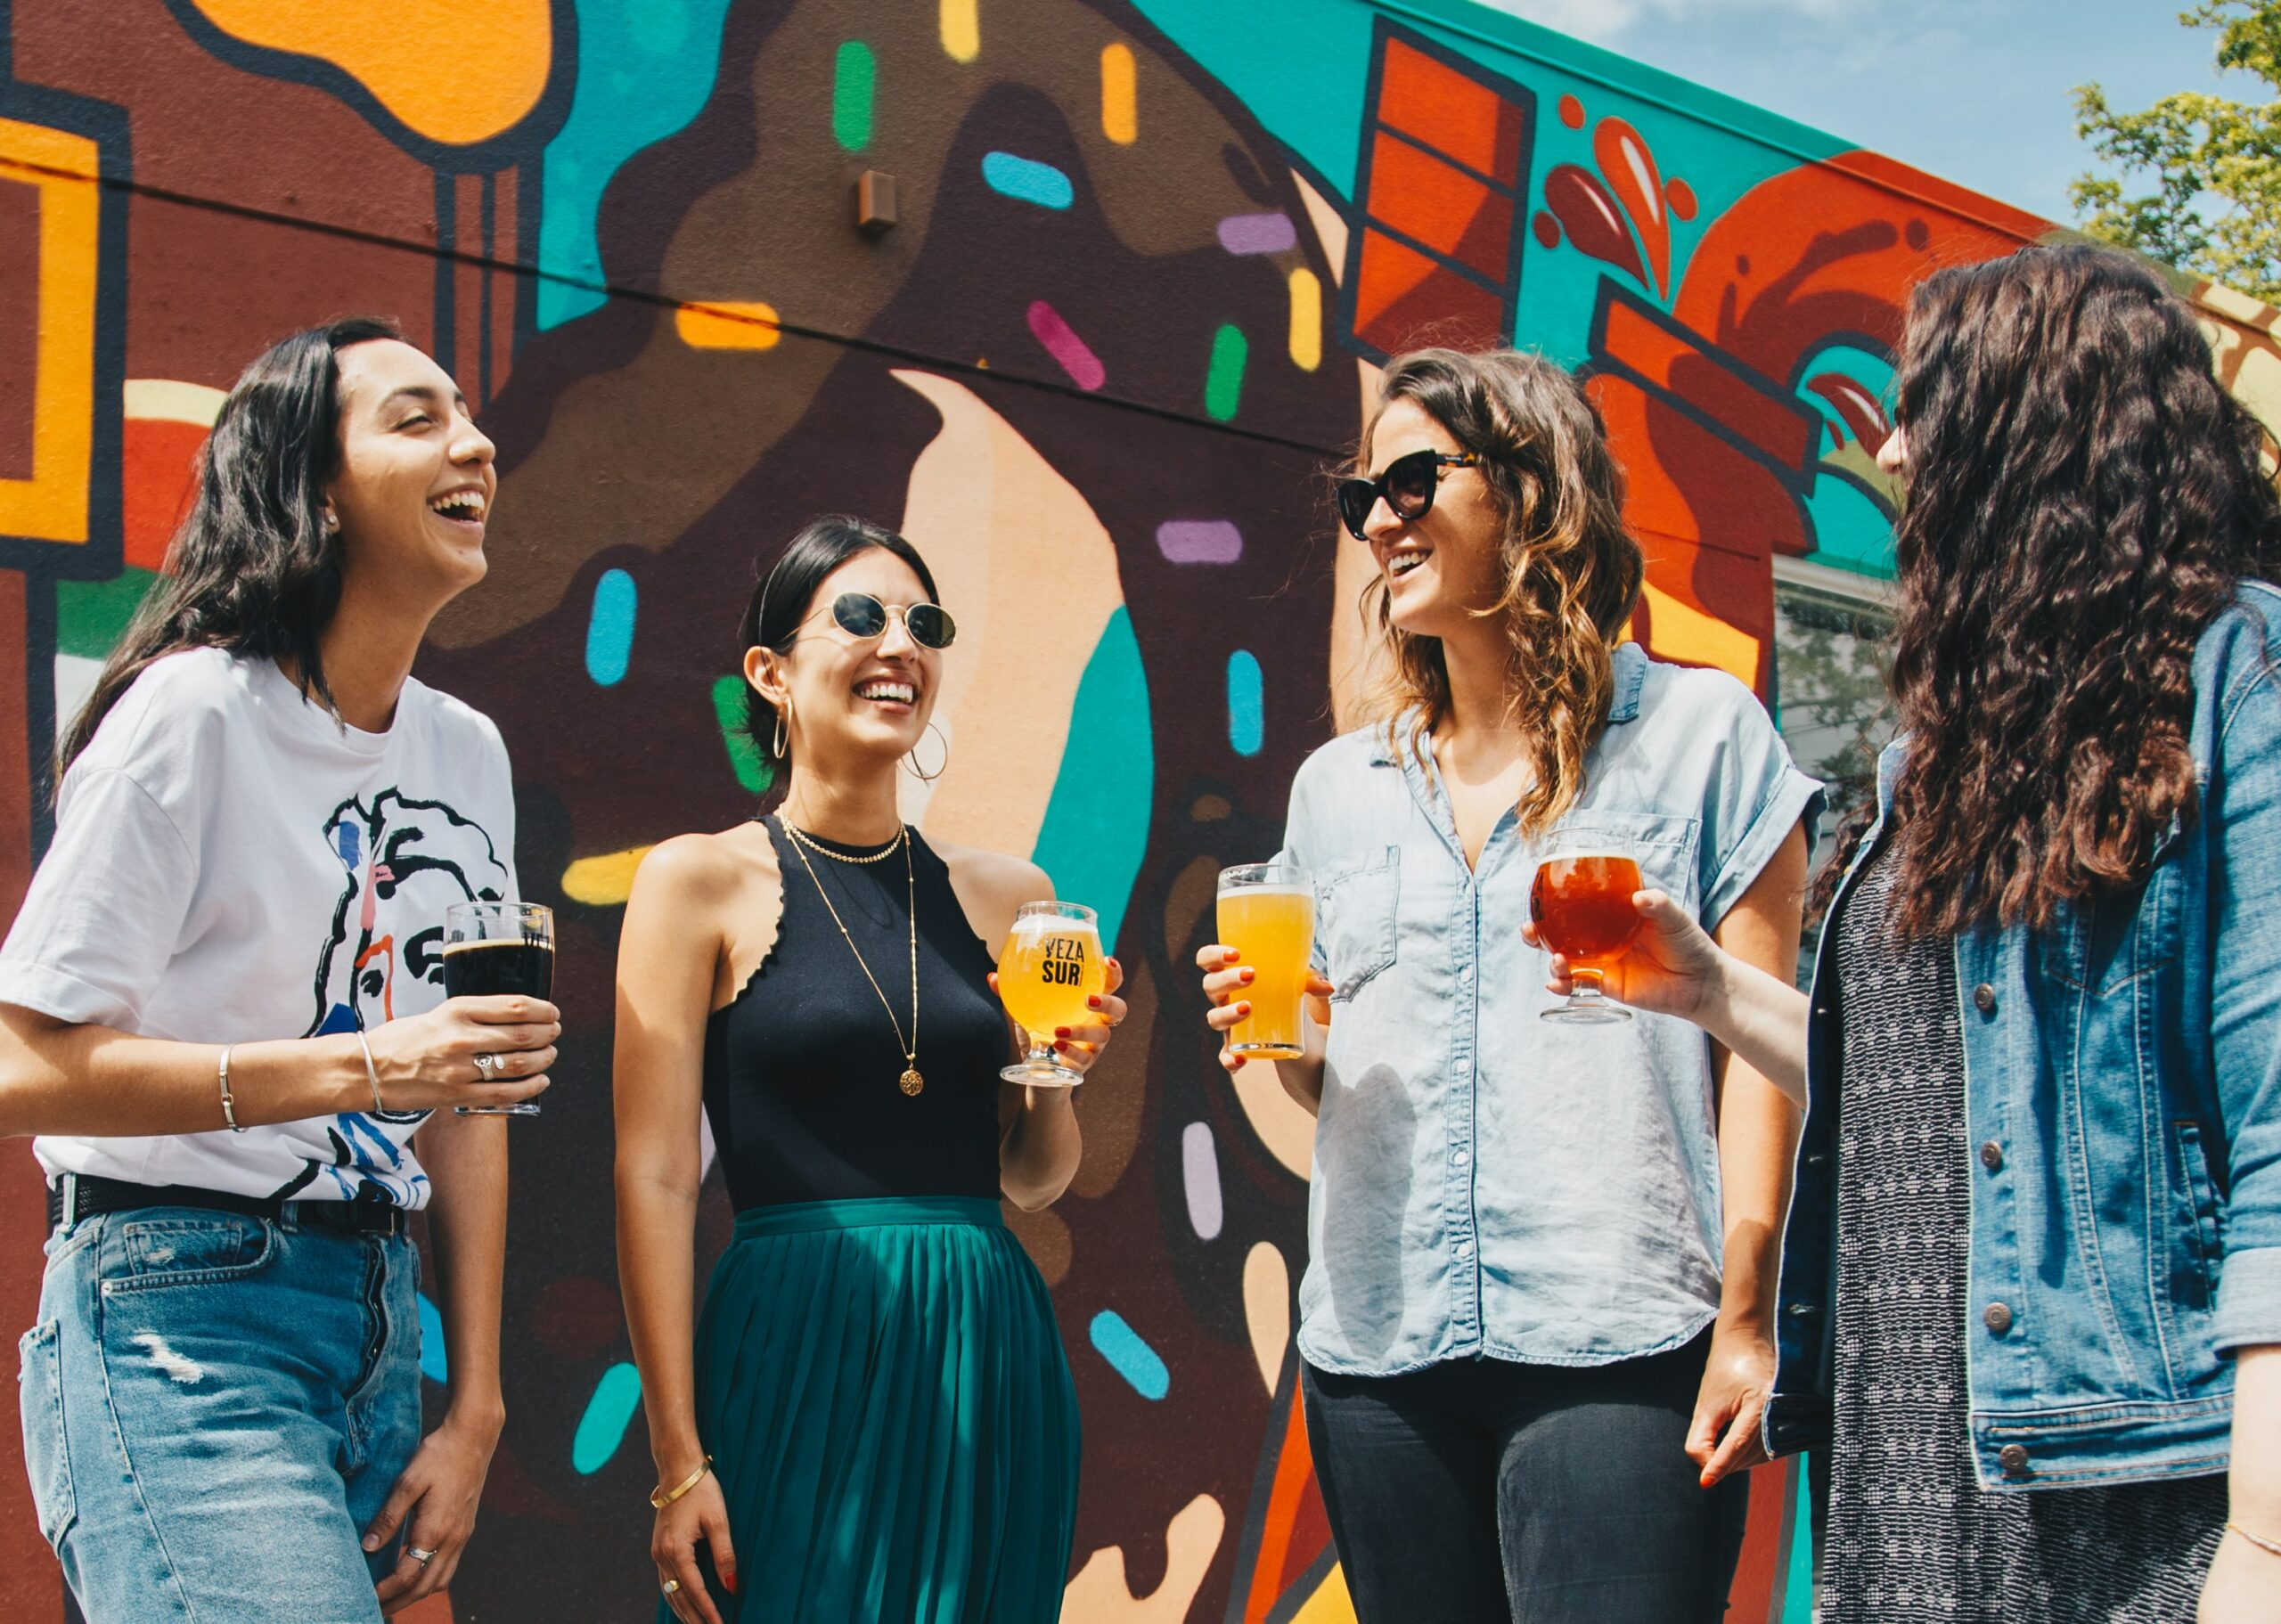 four women holding drinks against a graffiti painted wall